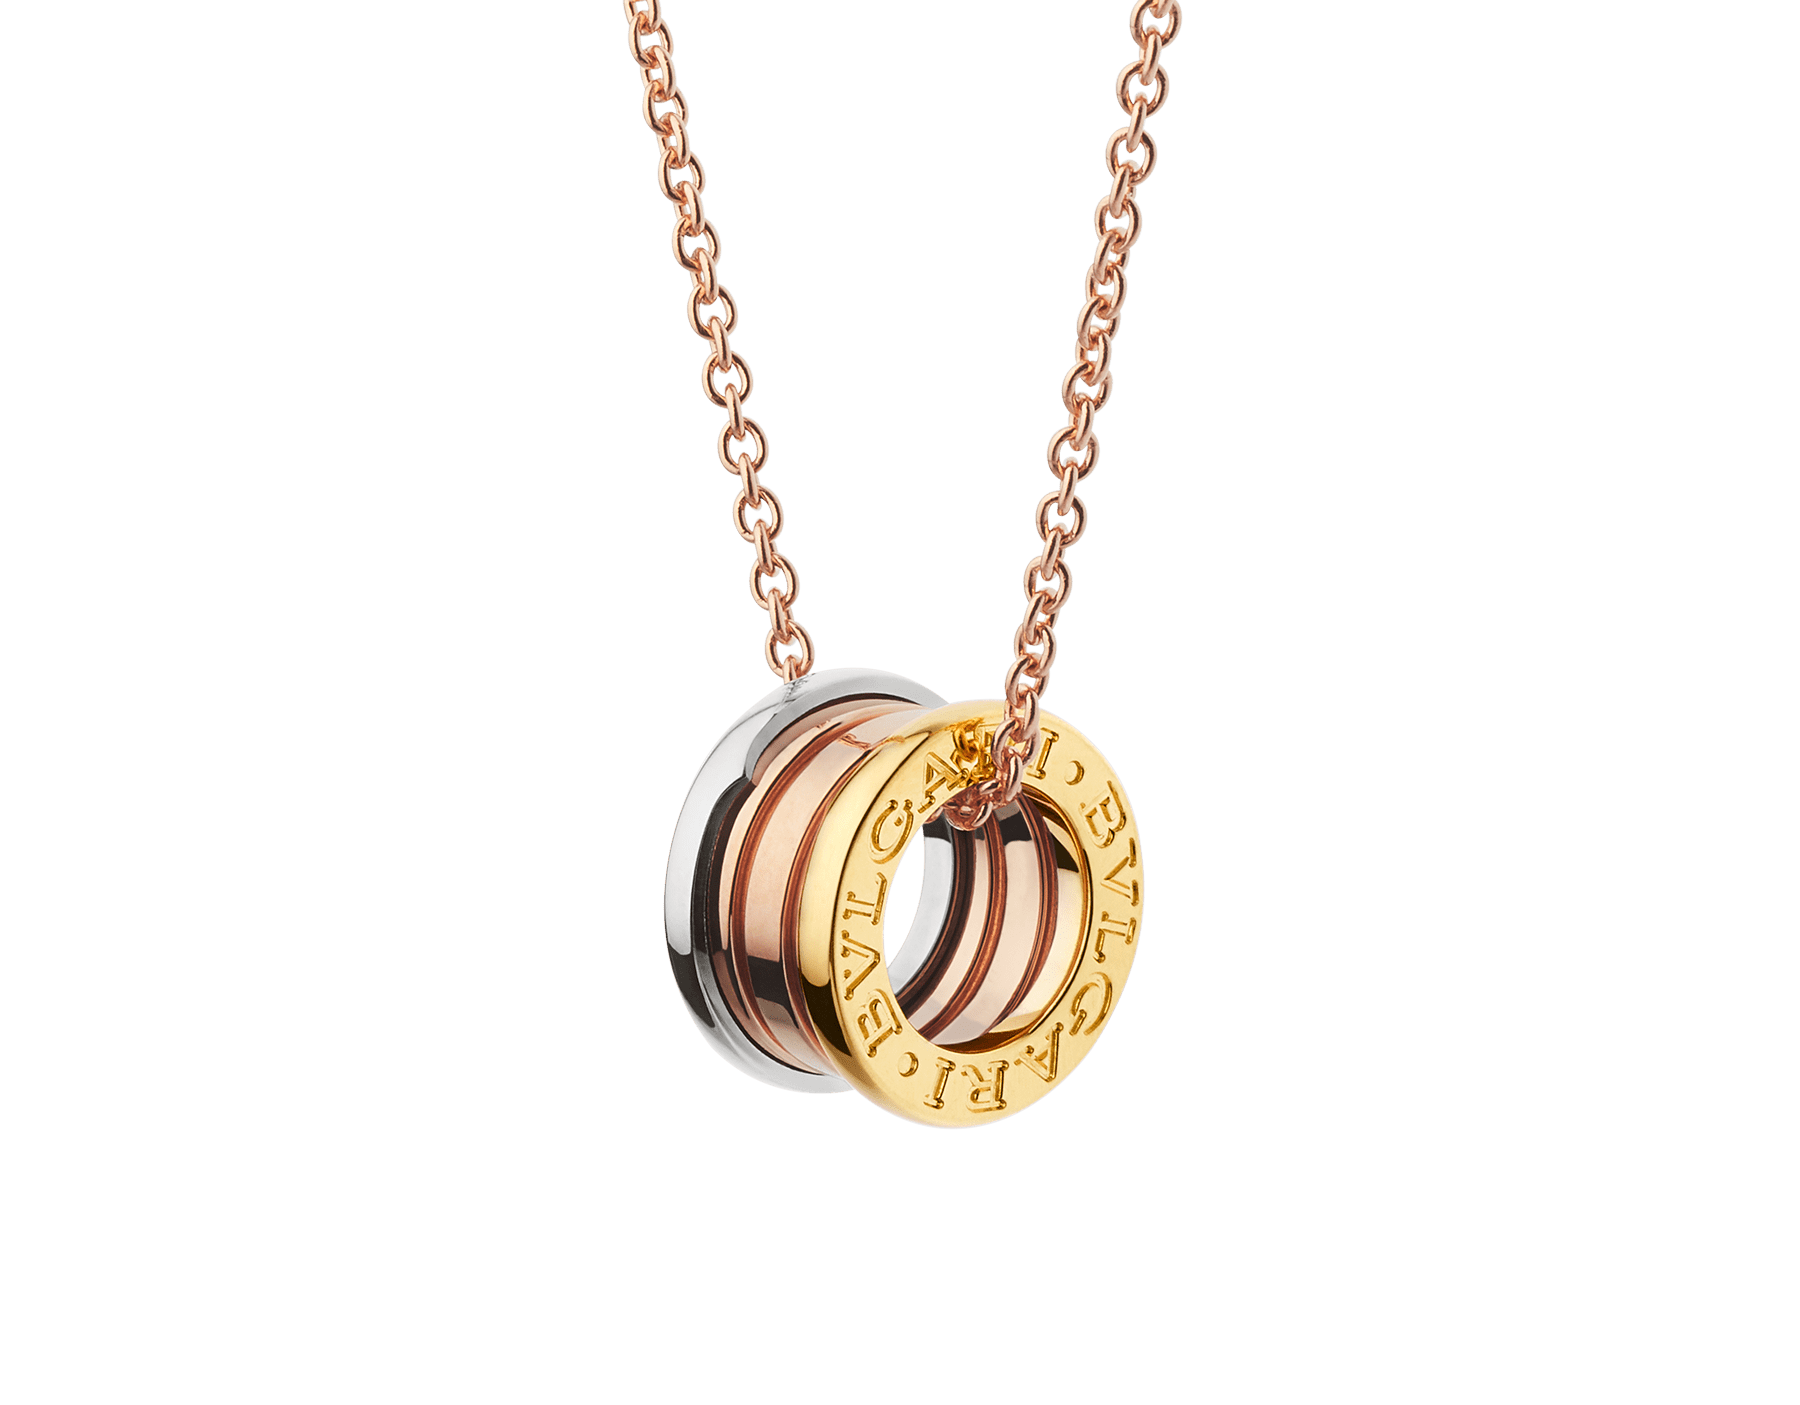 B.zero1 necklace in 18 kt rose gold with pendant in 18 kt rose, white and yellow gold. 352397 image 1